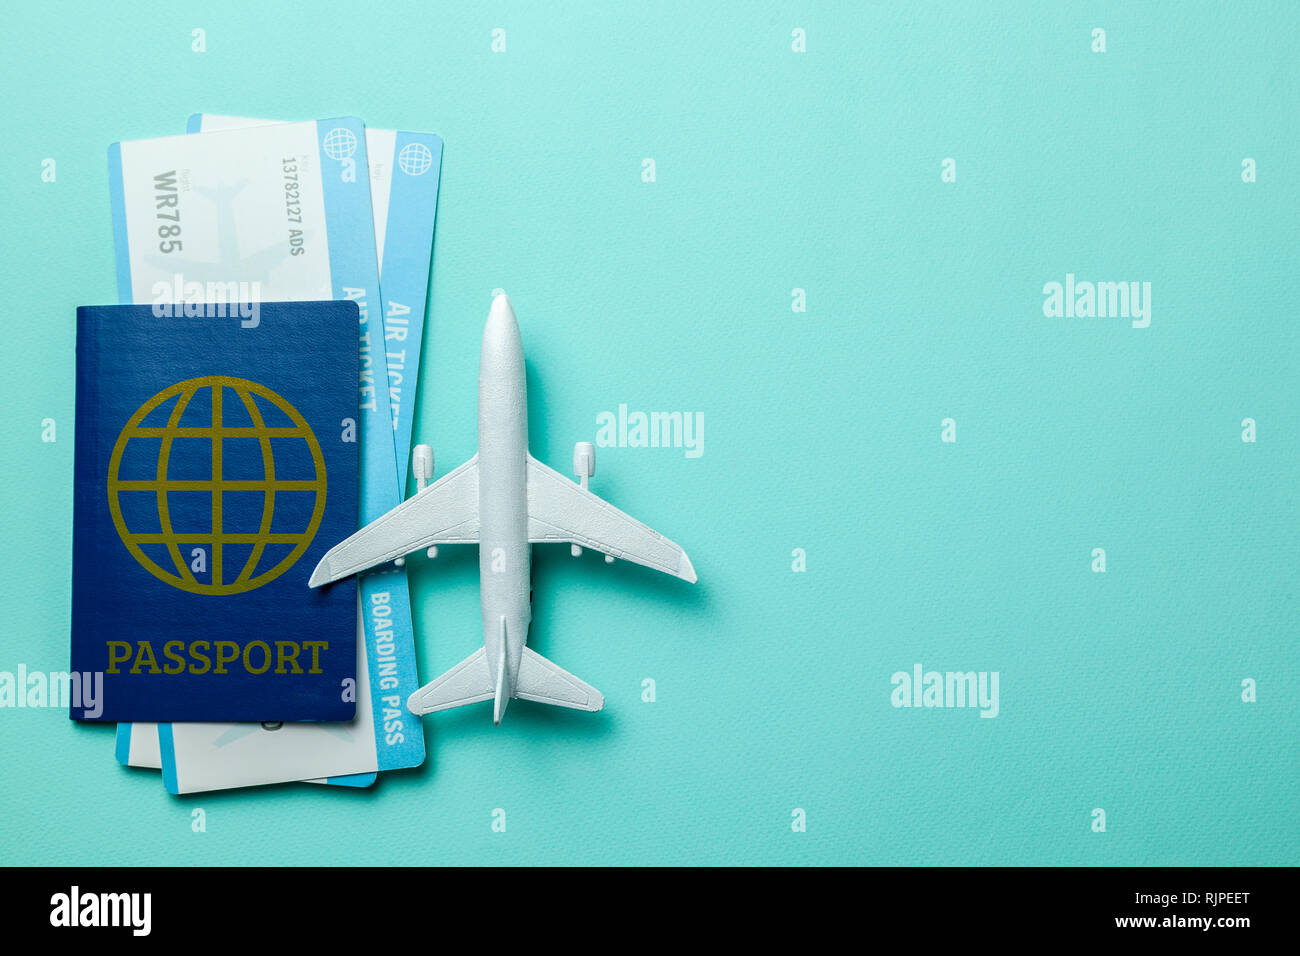 Tickets for plane and passport with model of passenger plane on green mint background. Copy space for text Stock Photo